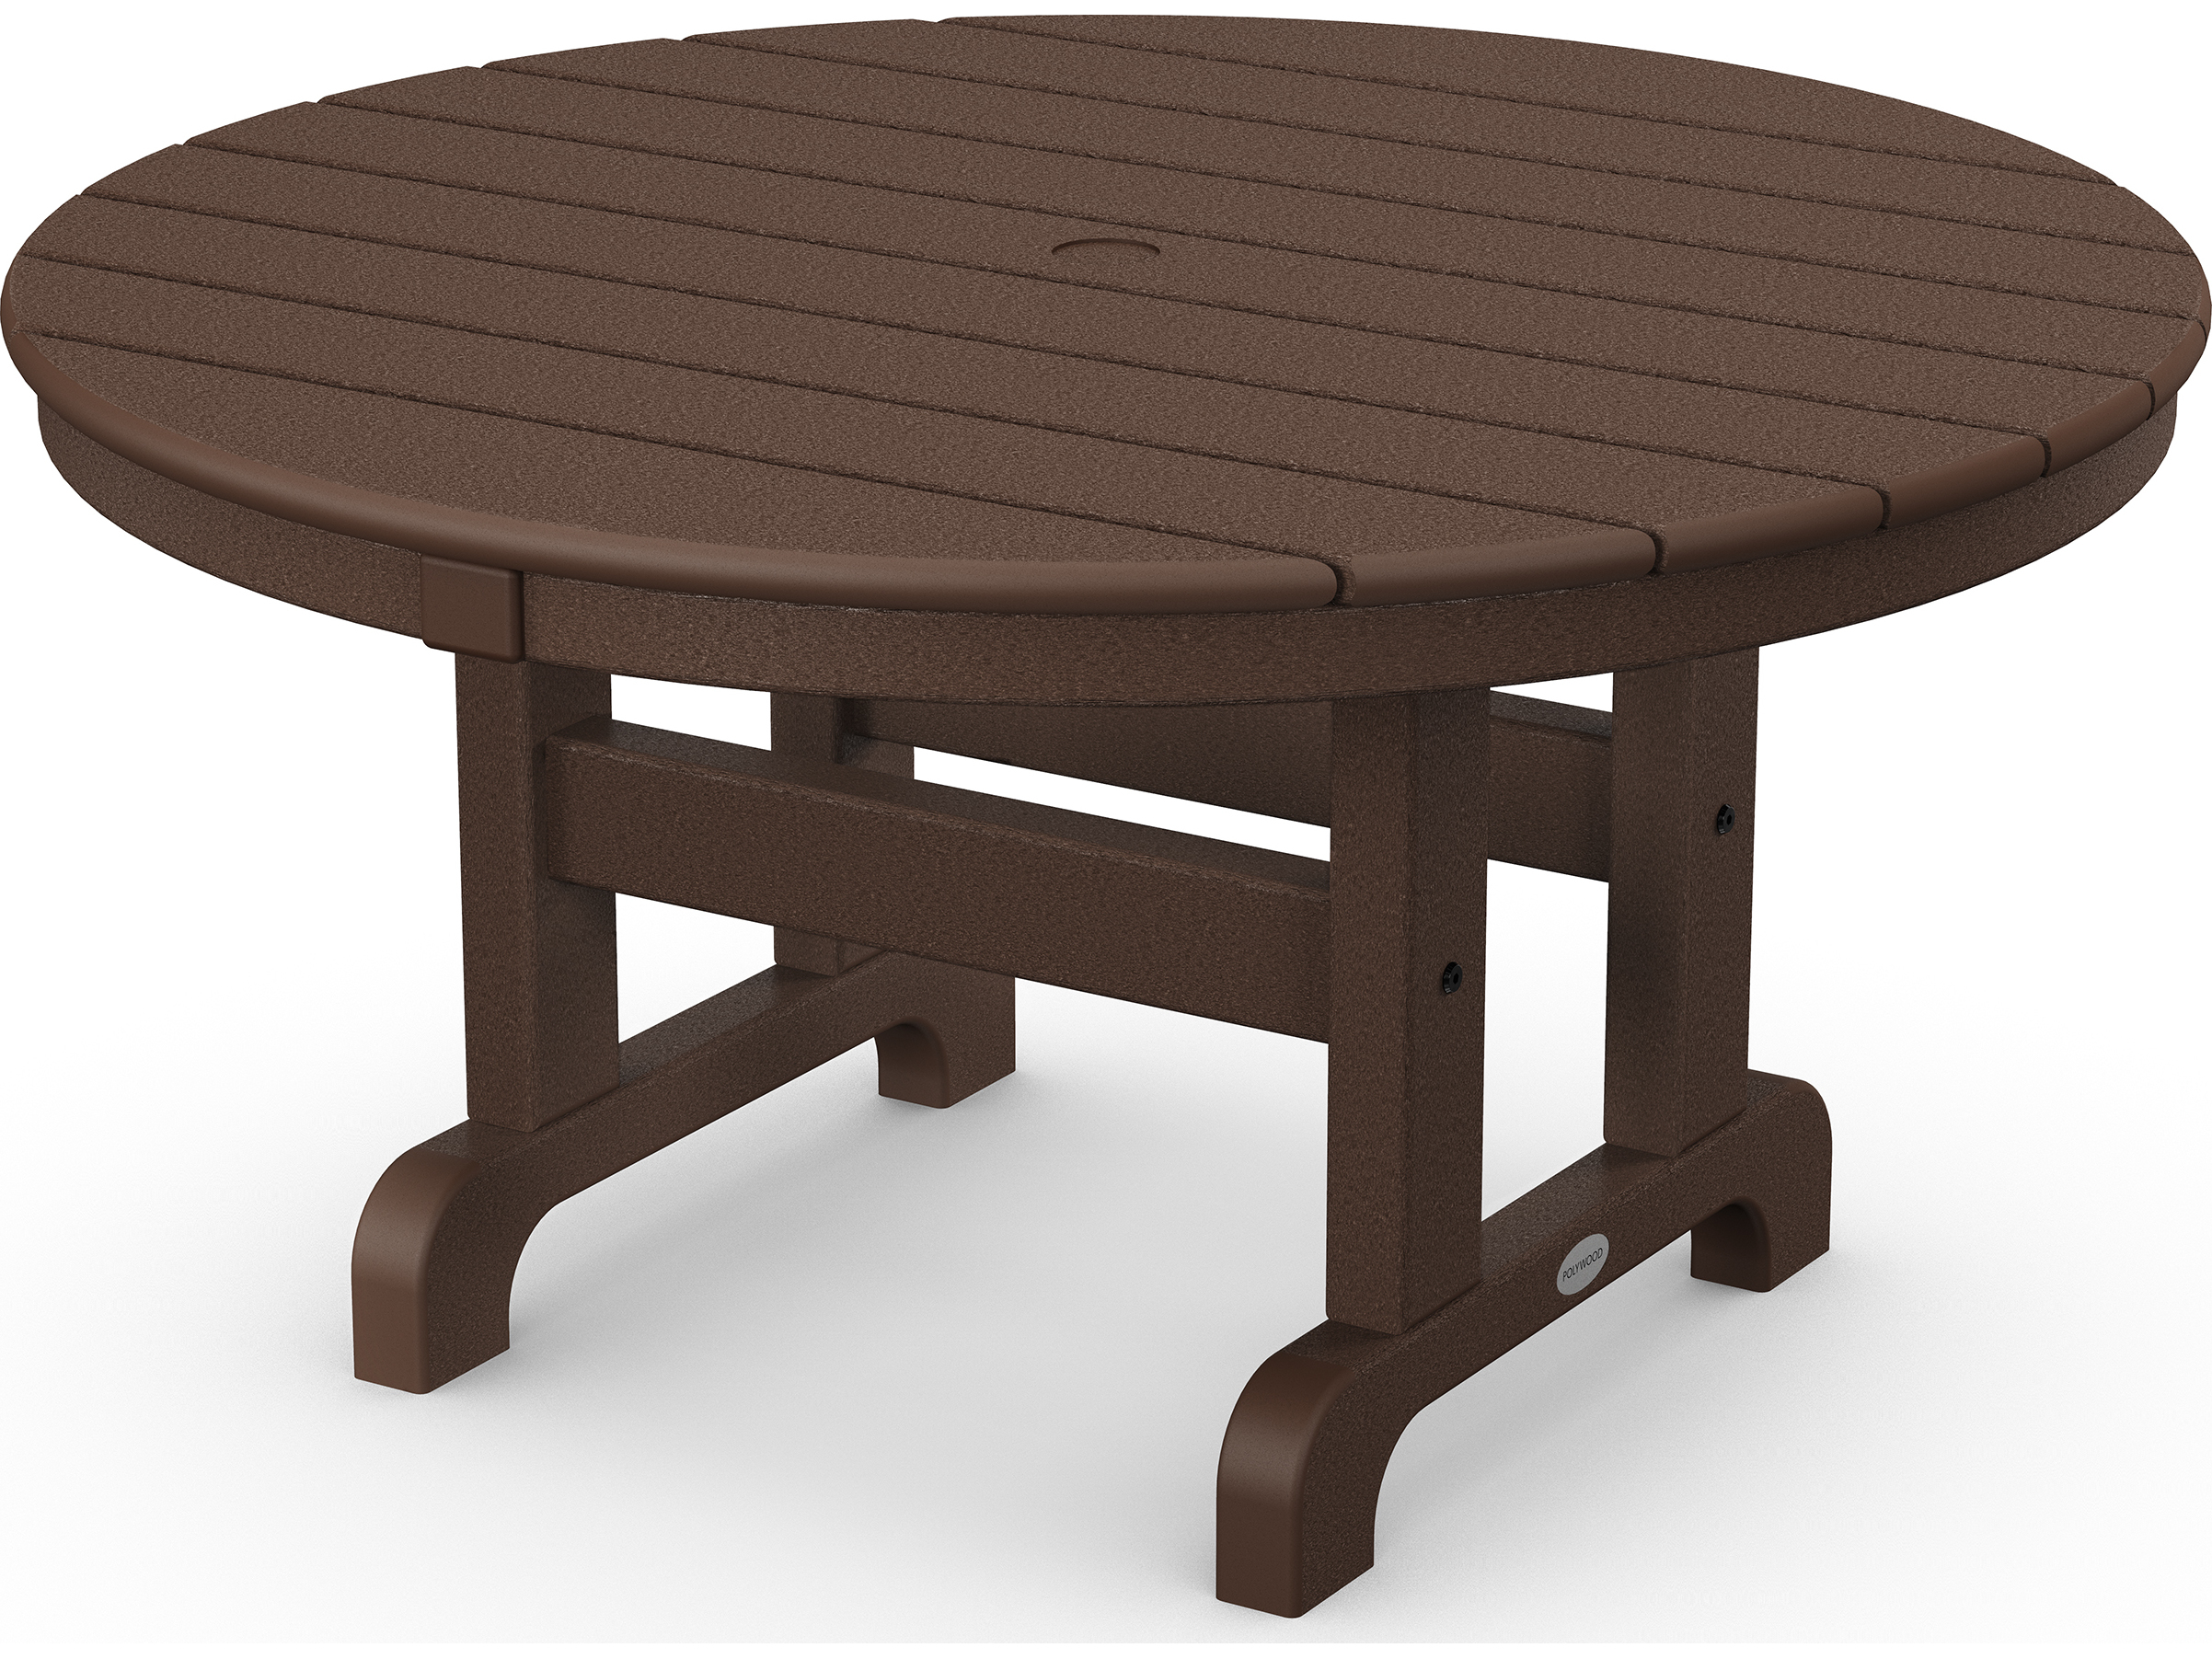 Polywood 174 Traditional Recycled Plastic 36 Round Chat Table